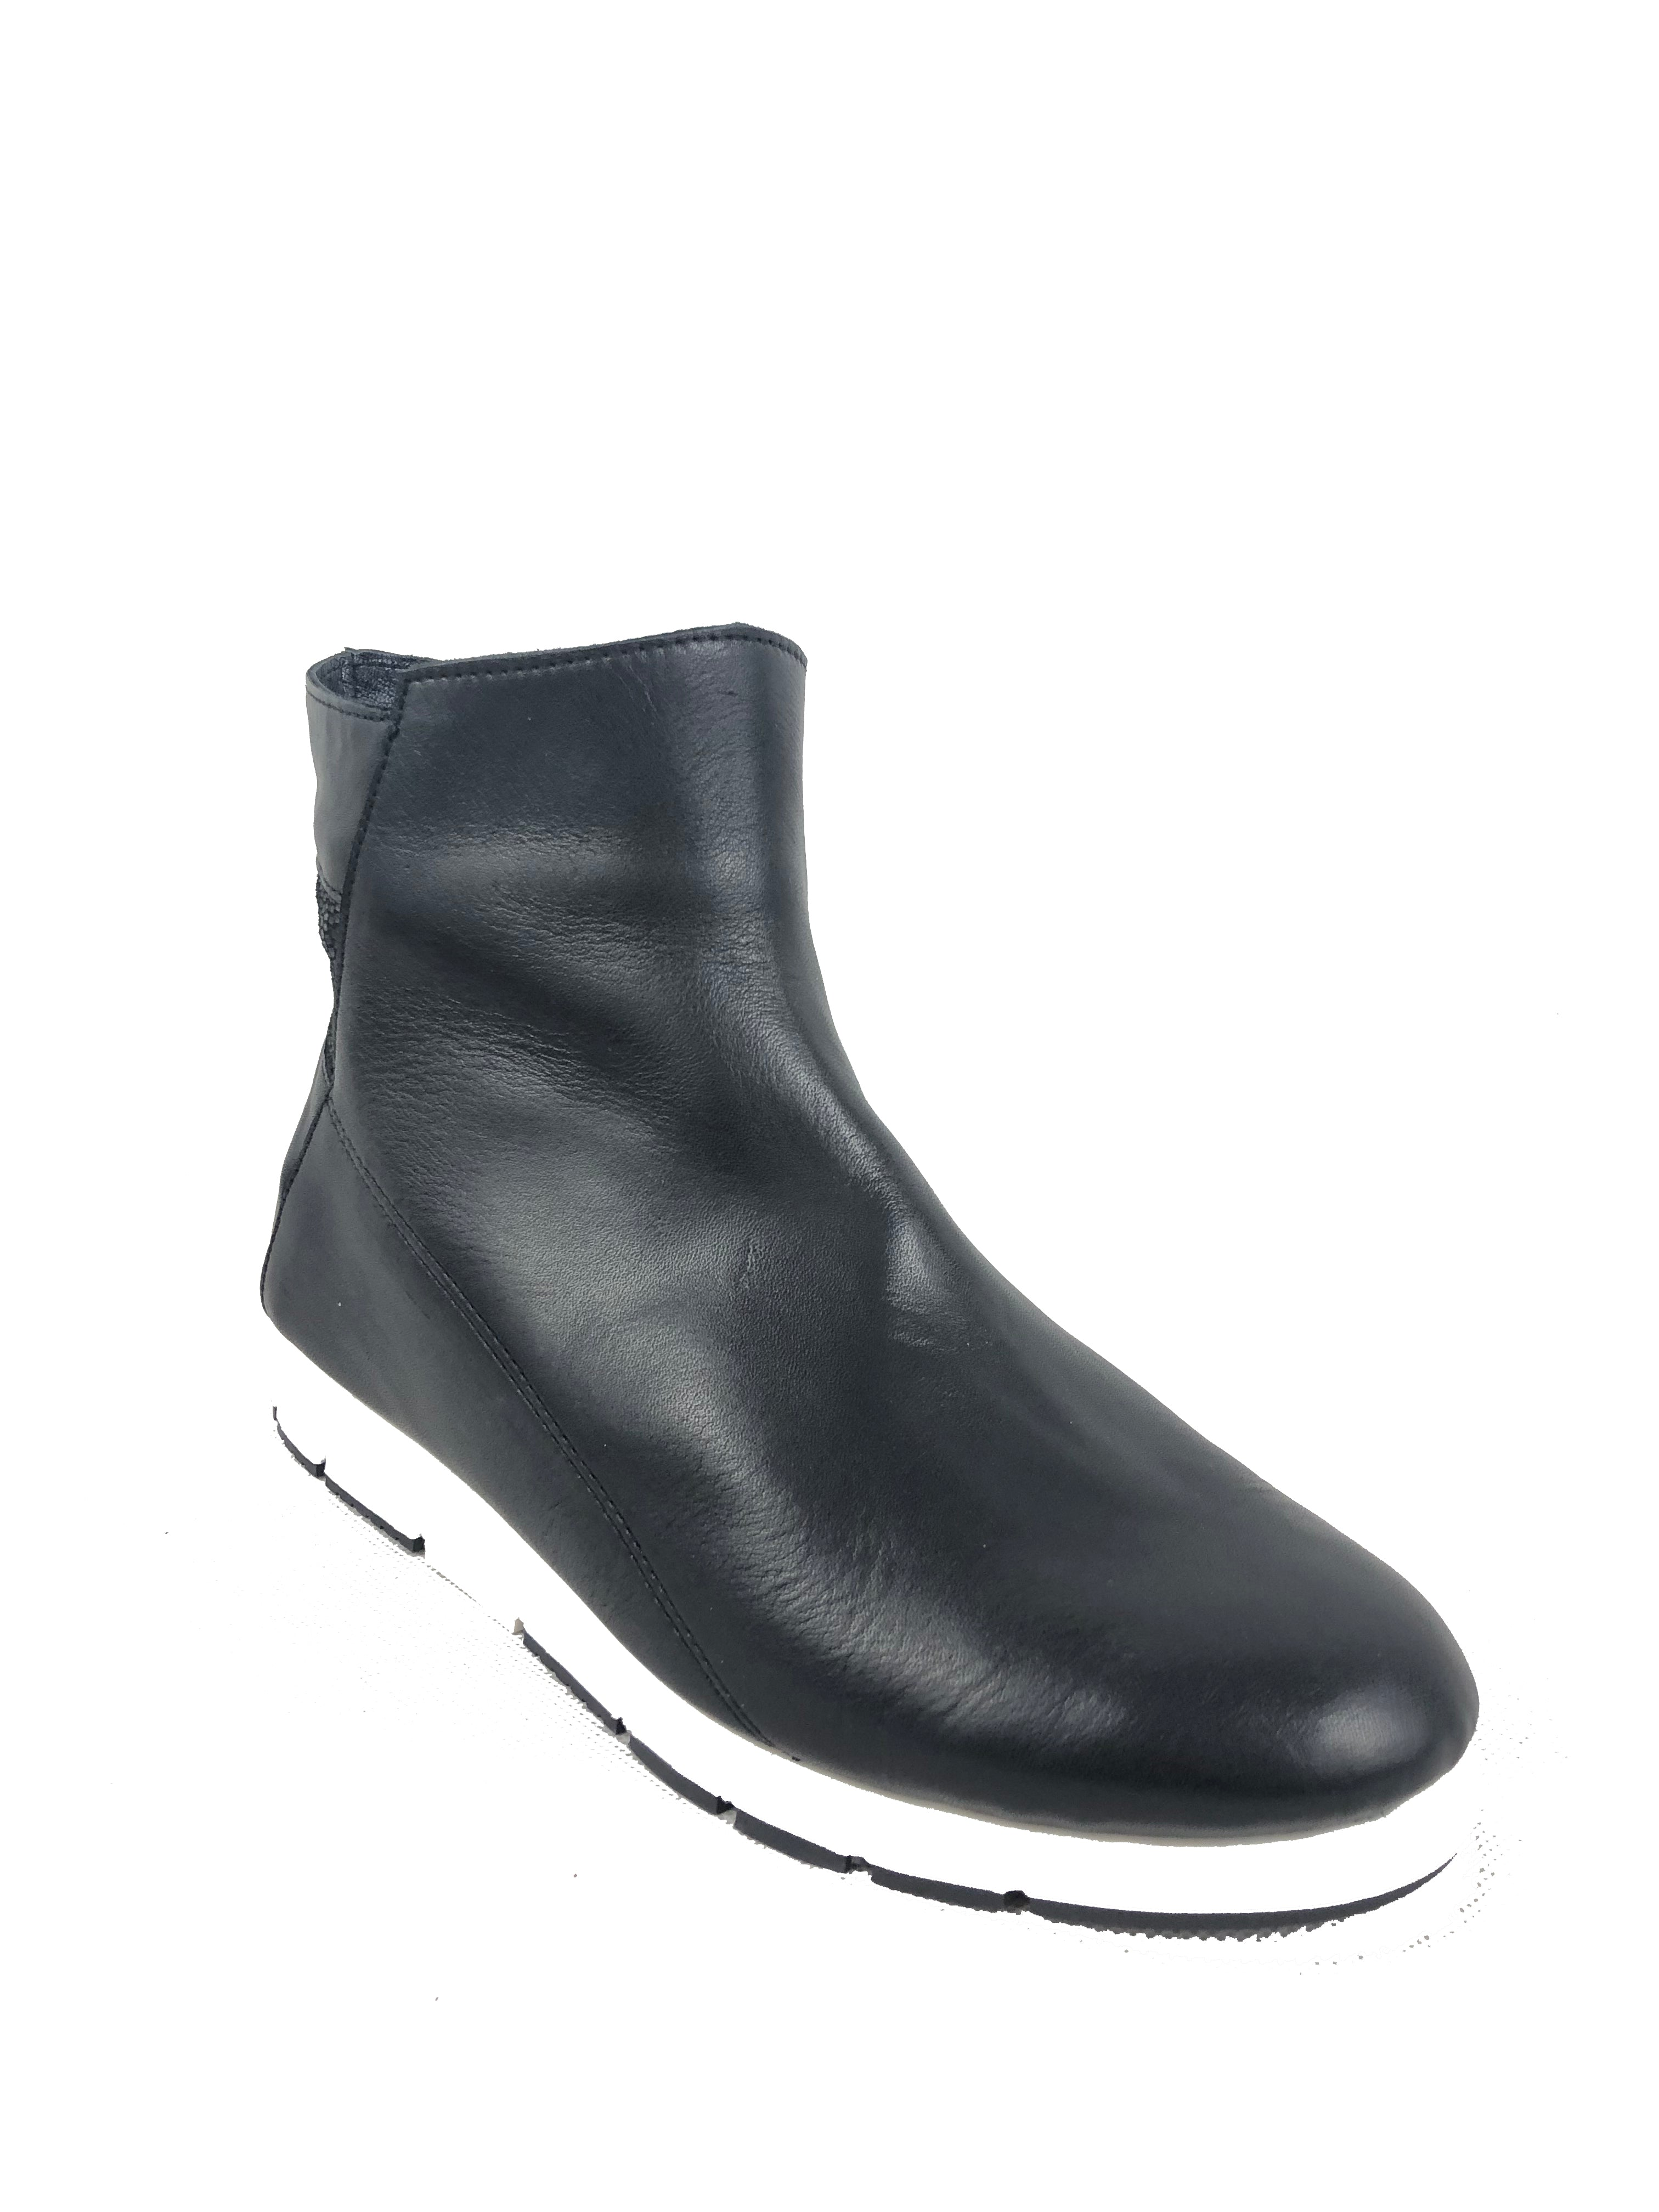 Aerobics Black and White Shoe Boot